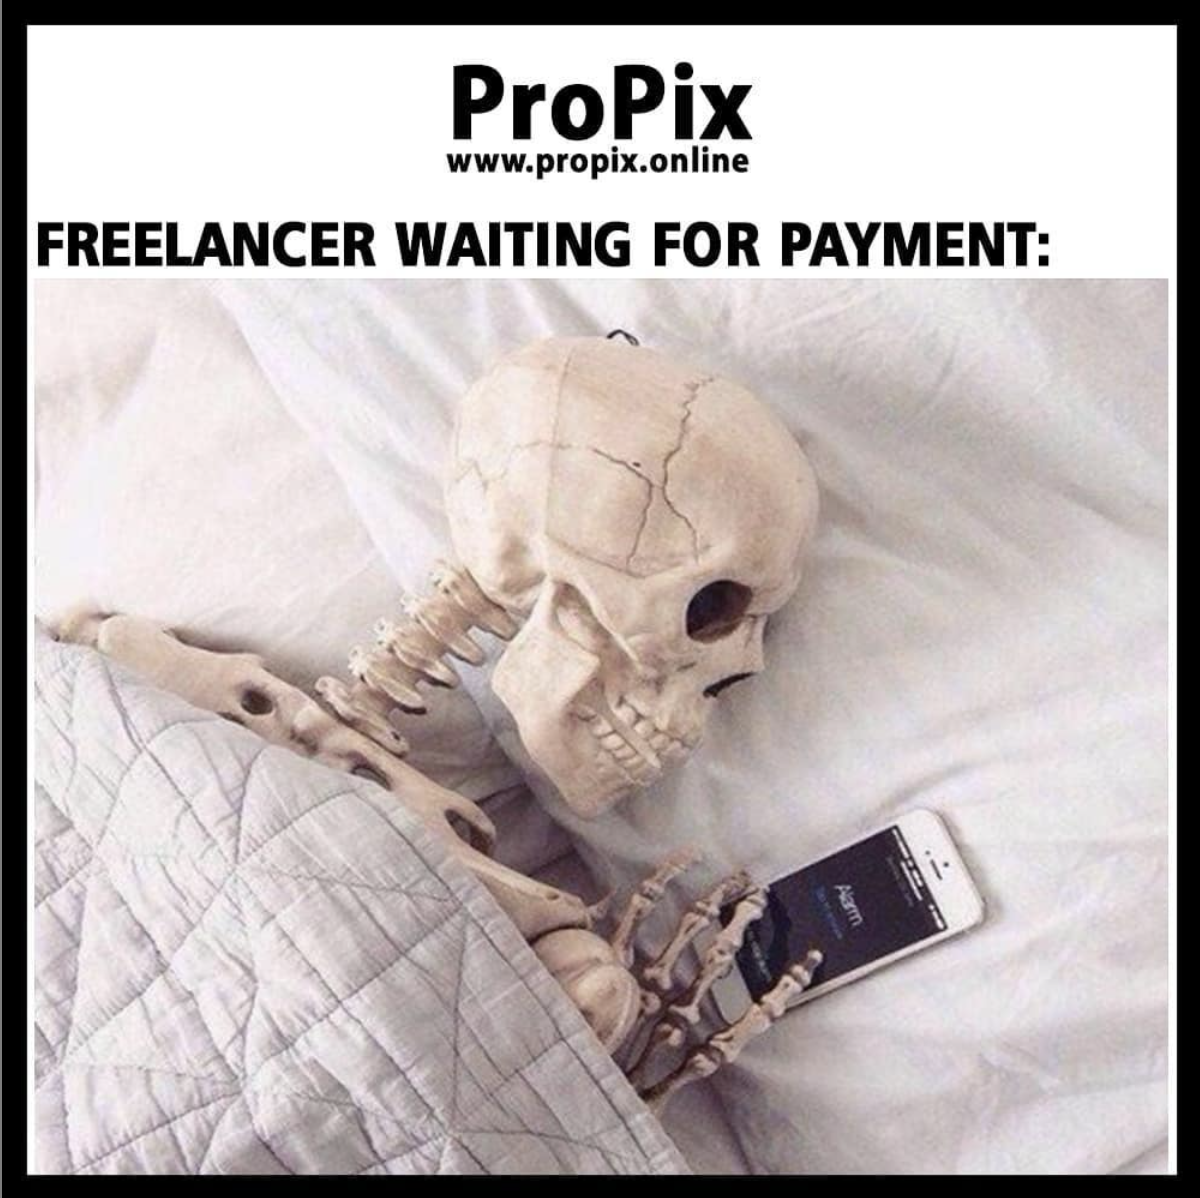 A freelancer still waiting to get paid